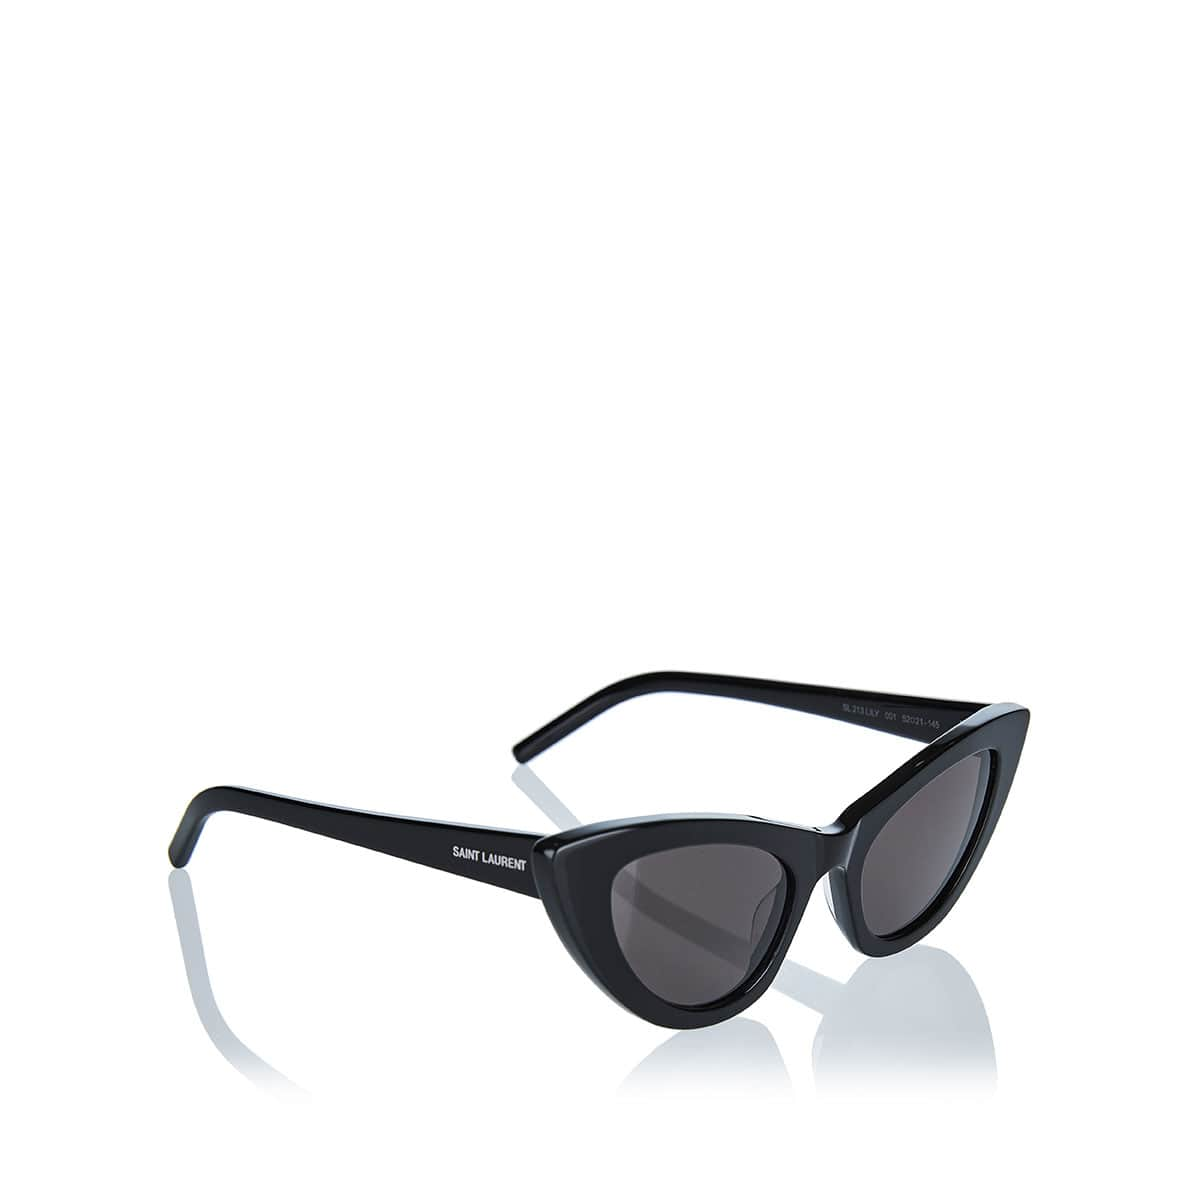 New Wave SL 213 Lily sunglasses